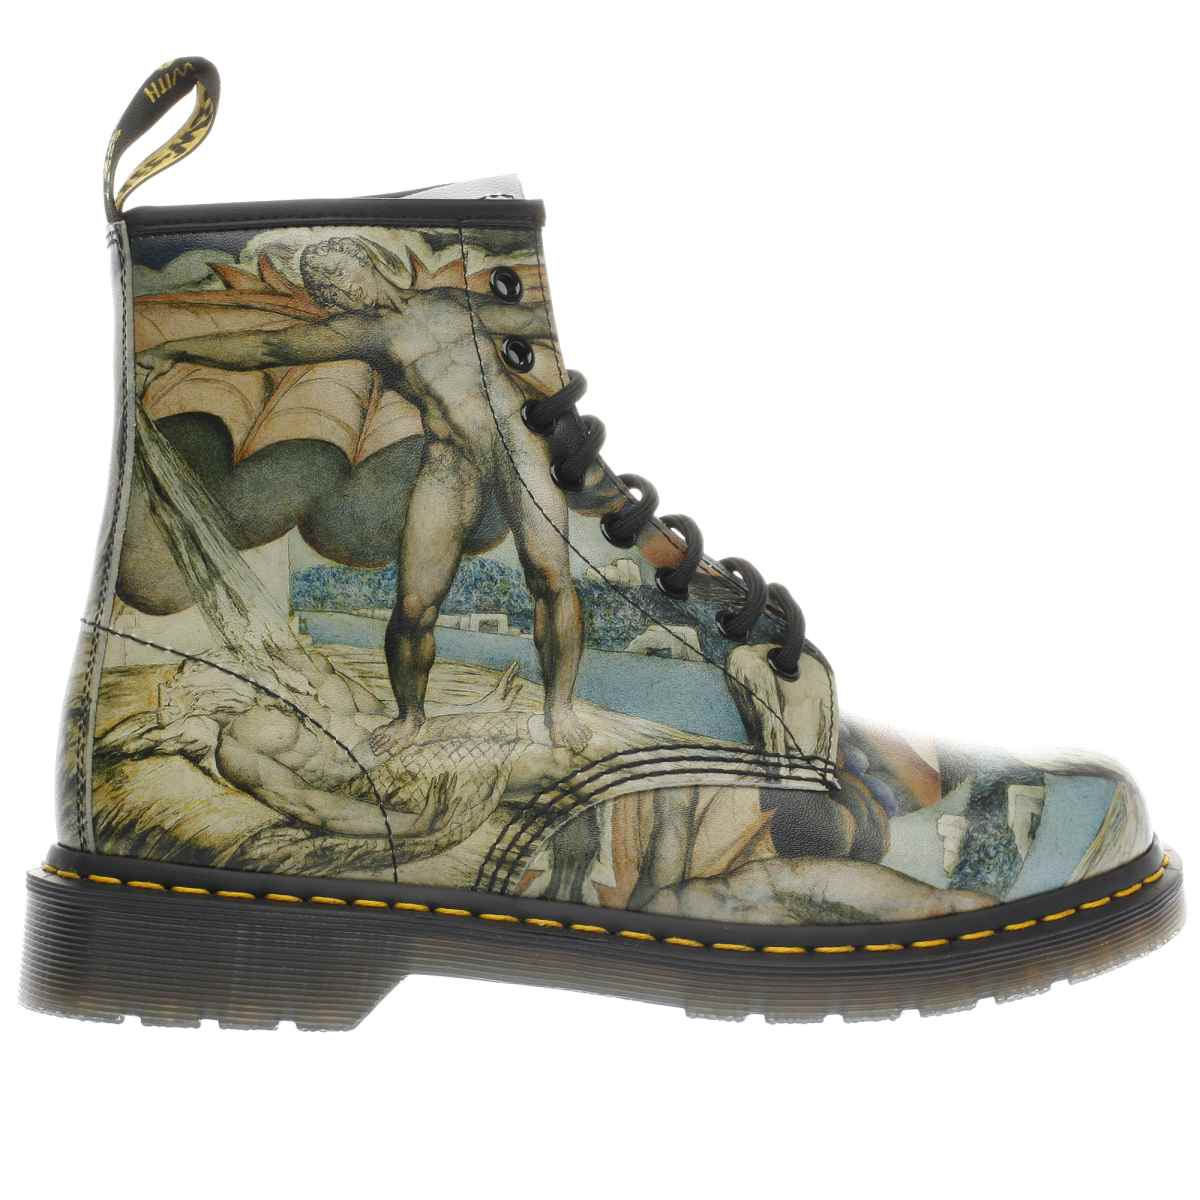 dr martens black & stone 1460 william blake boots